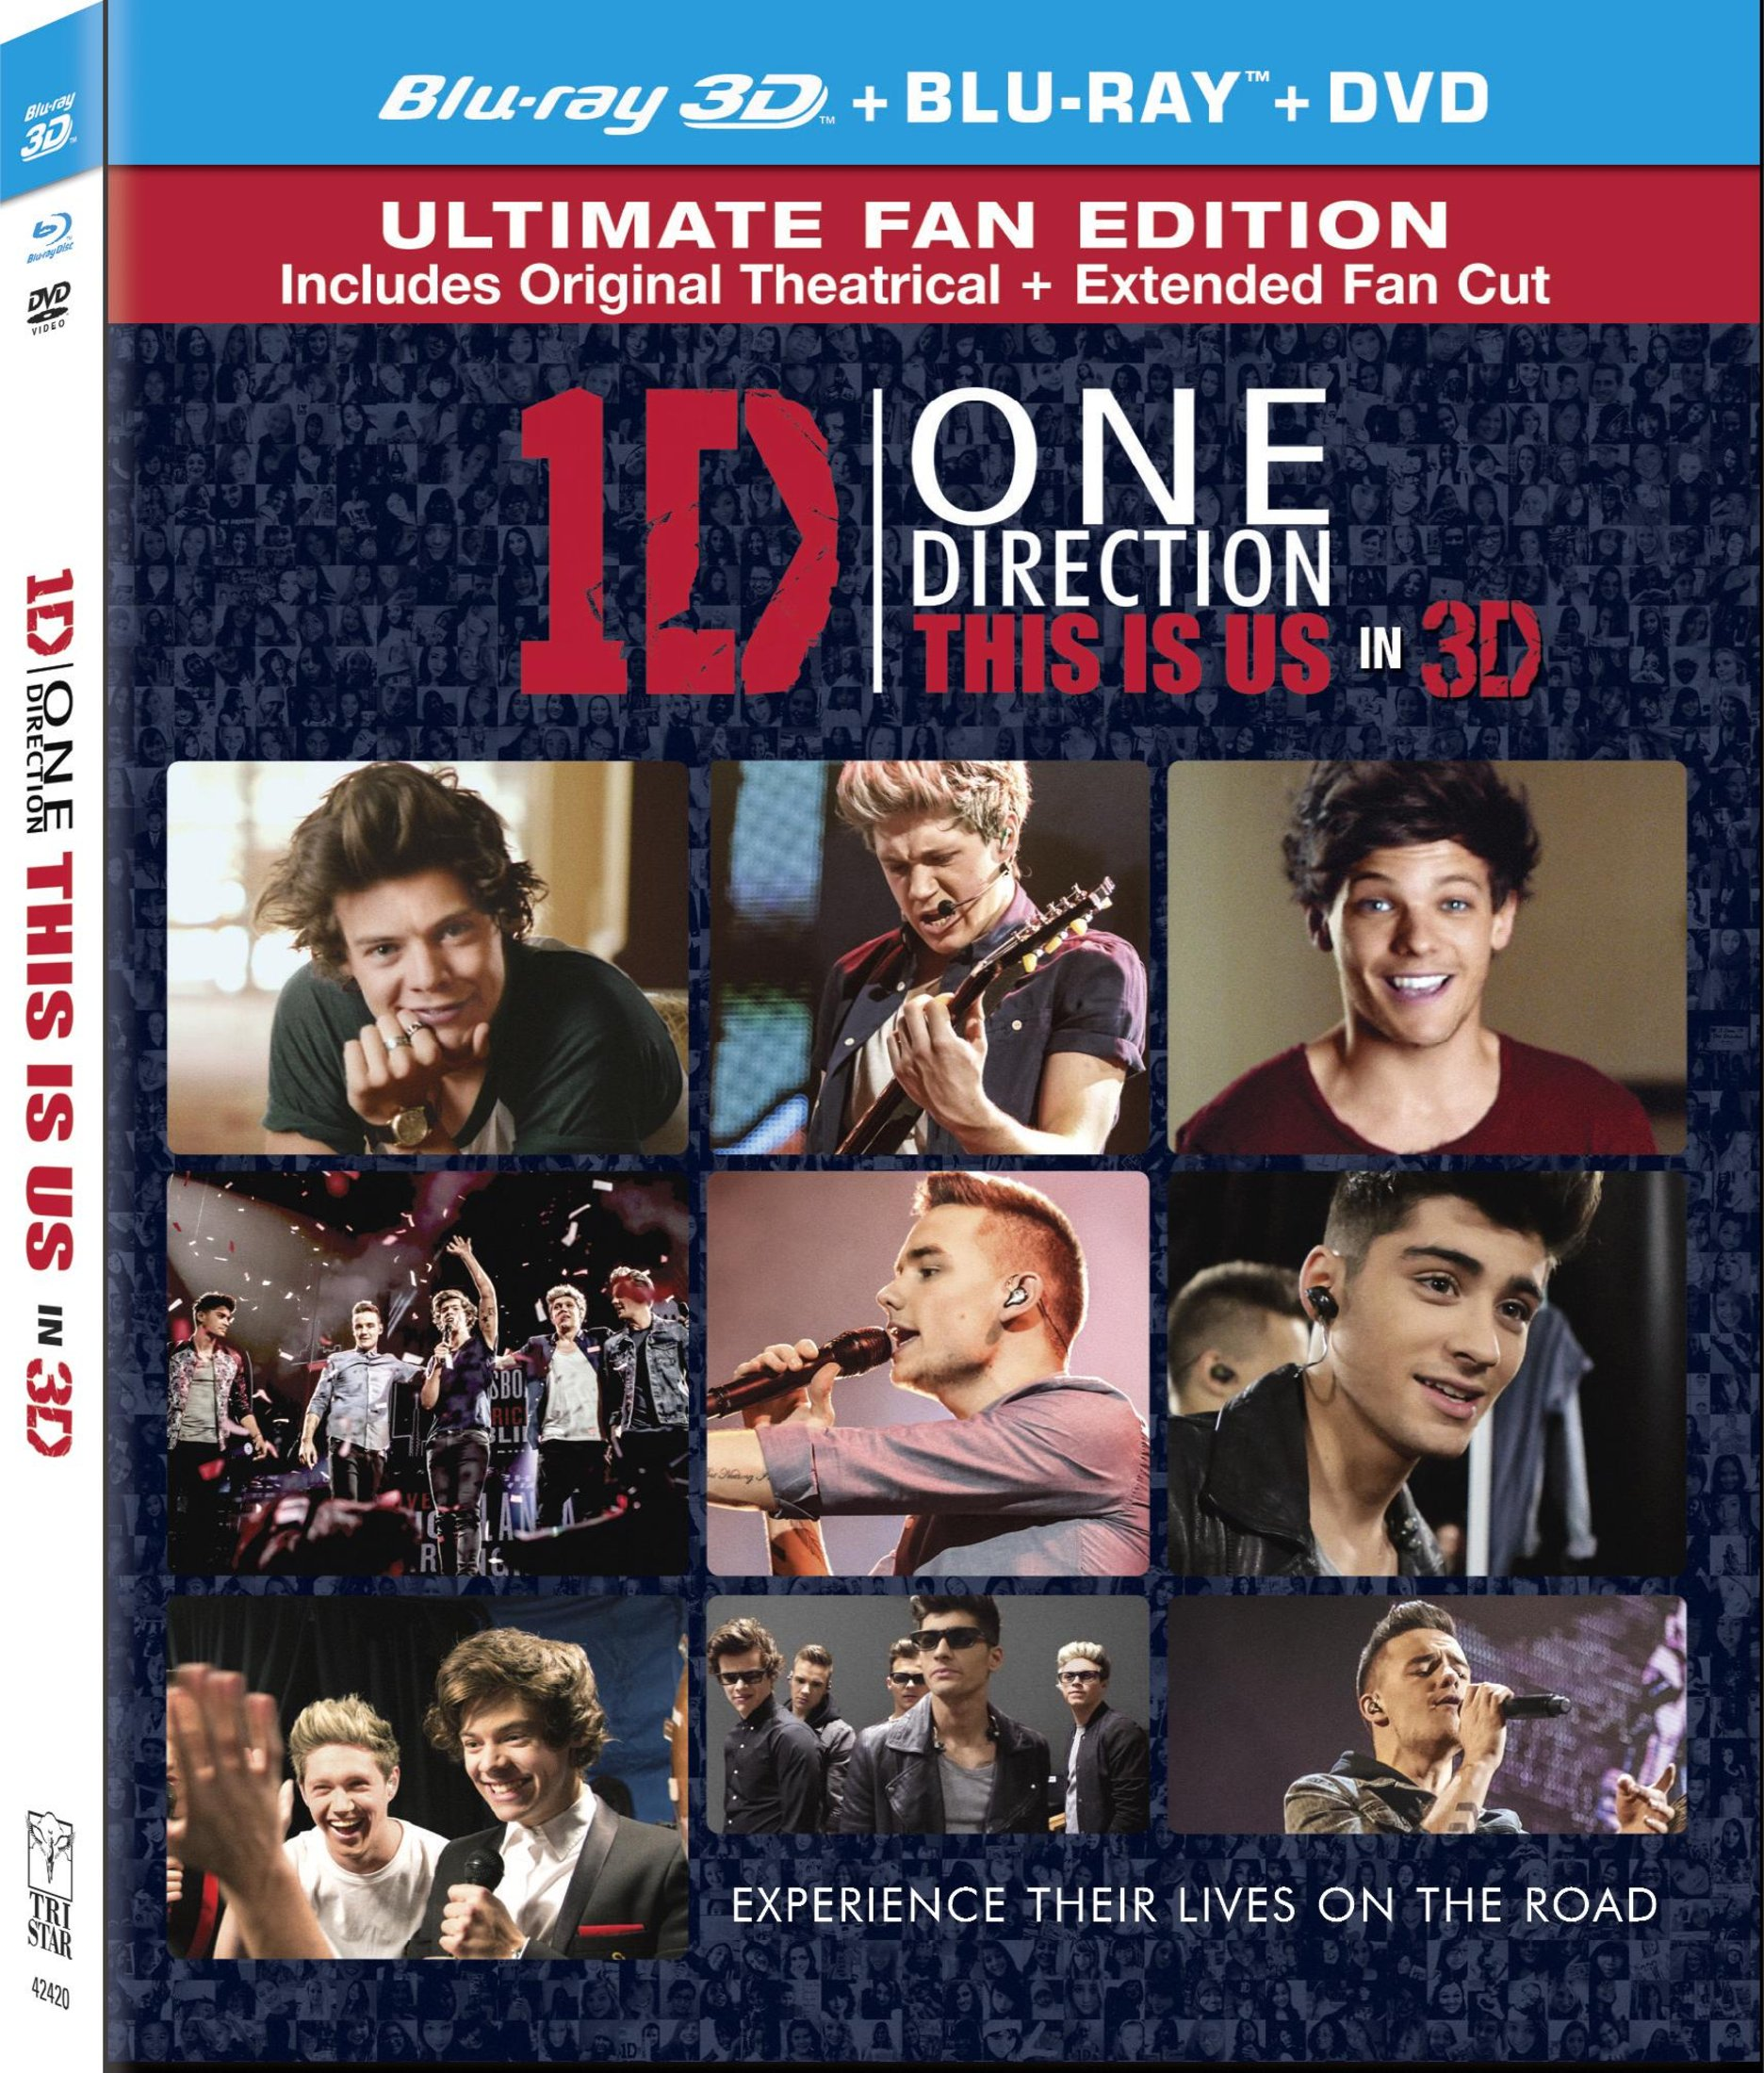 1D_BD_ULTIMATE FAN EDITION